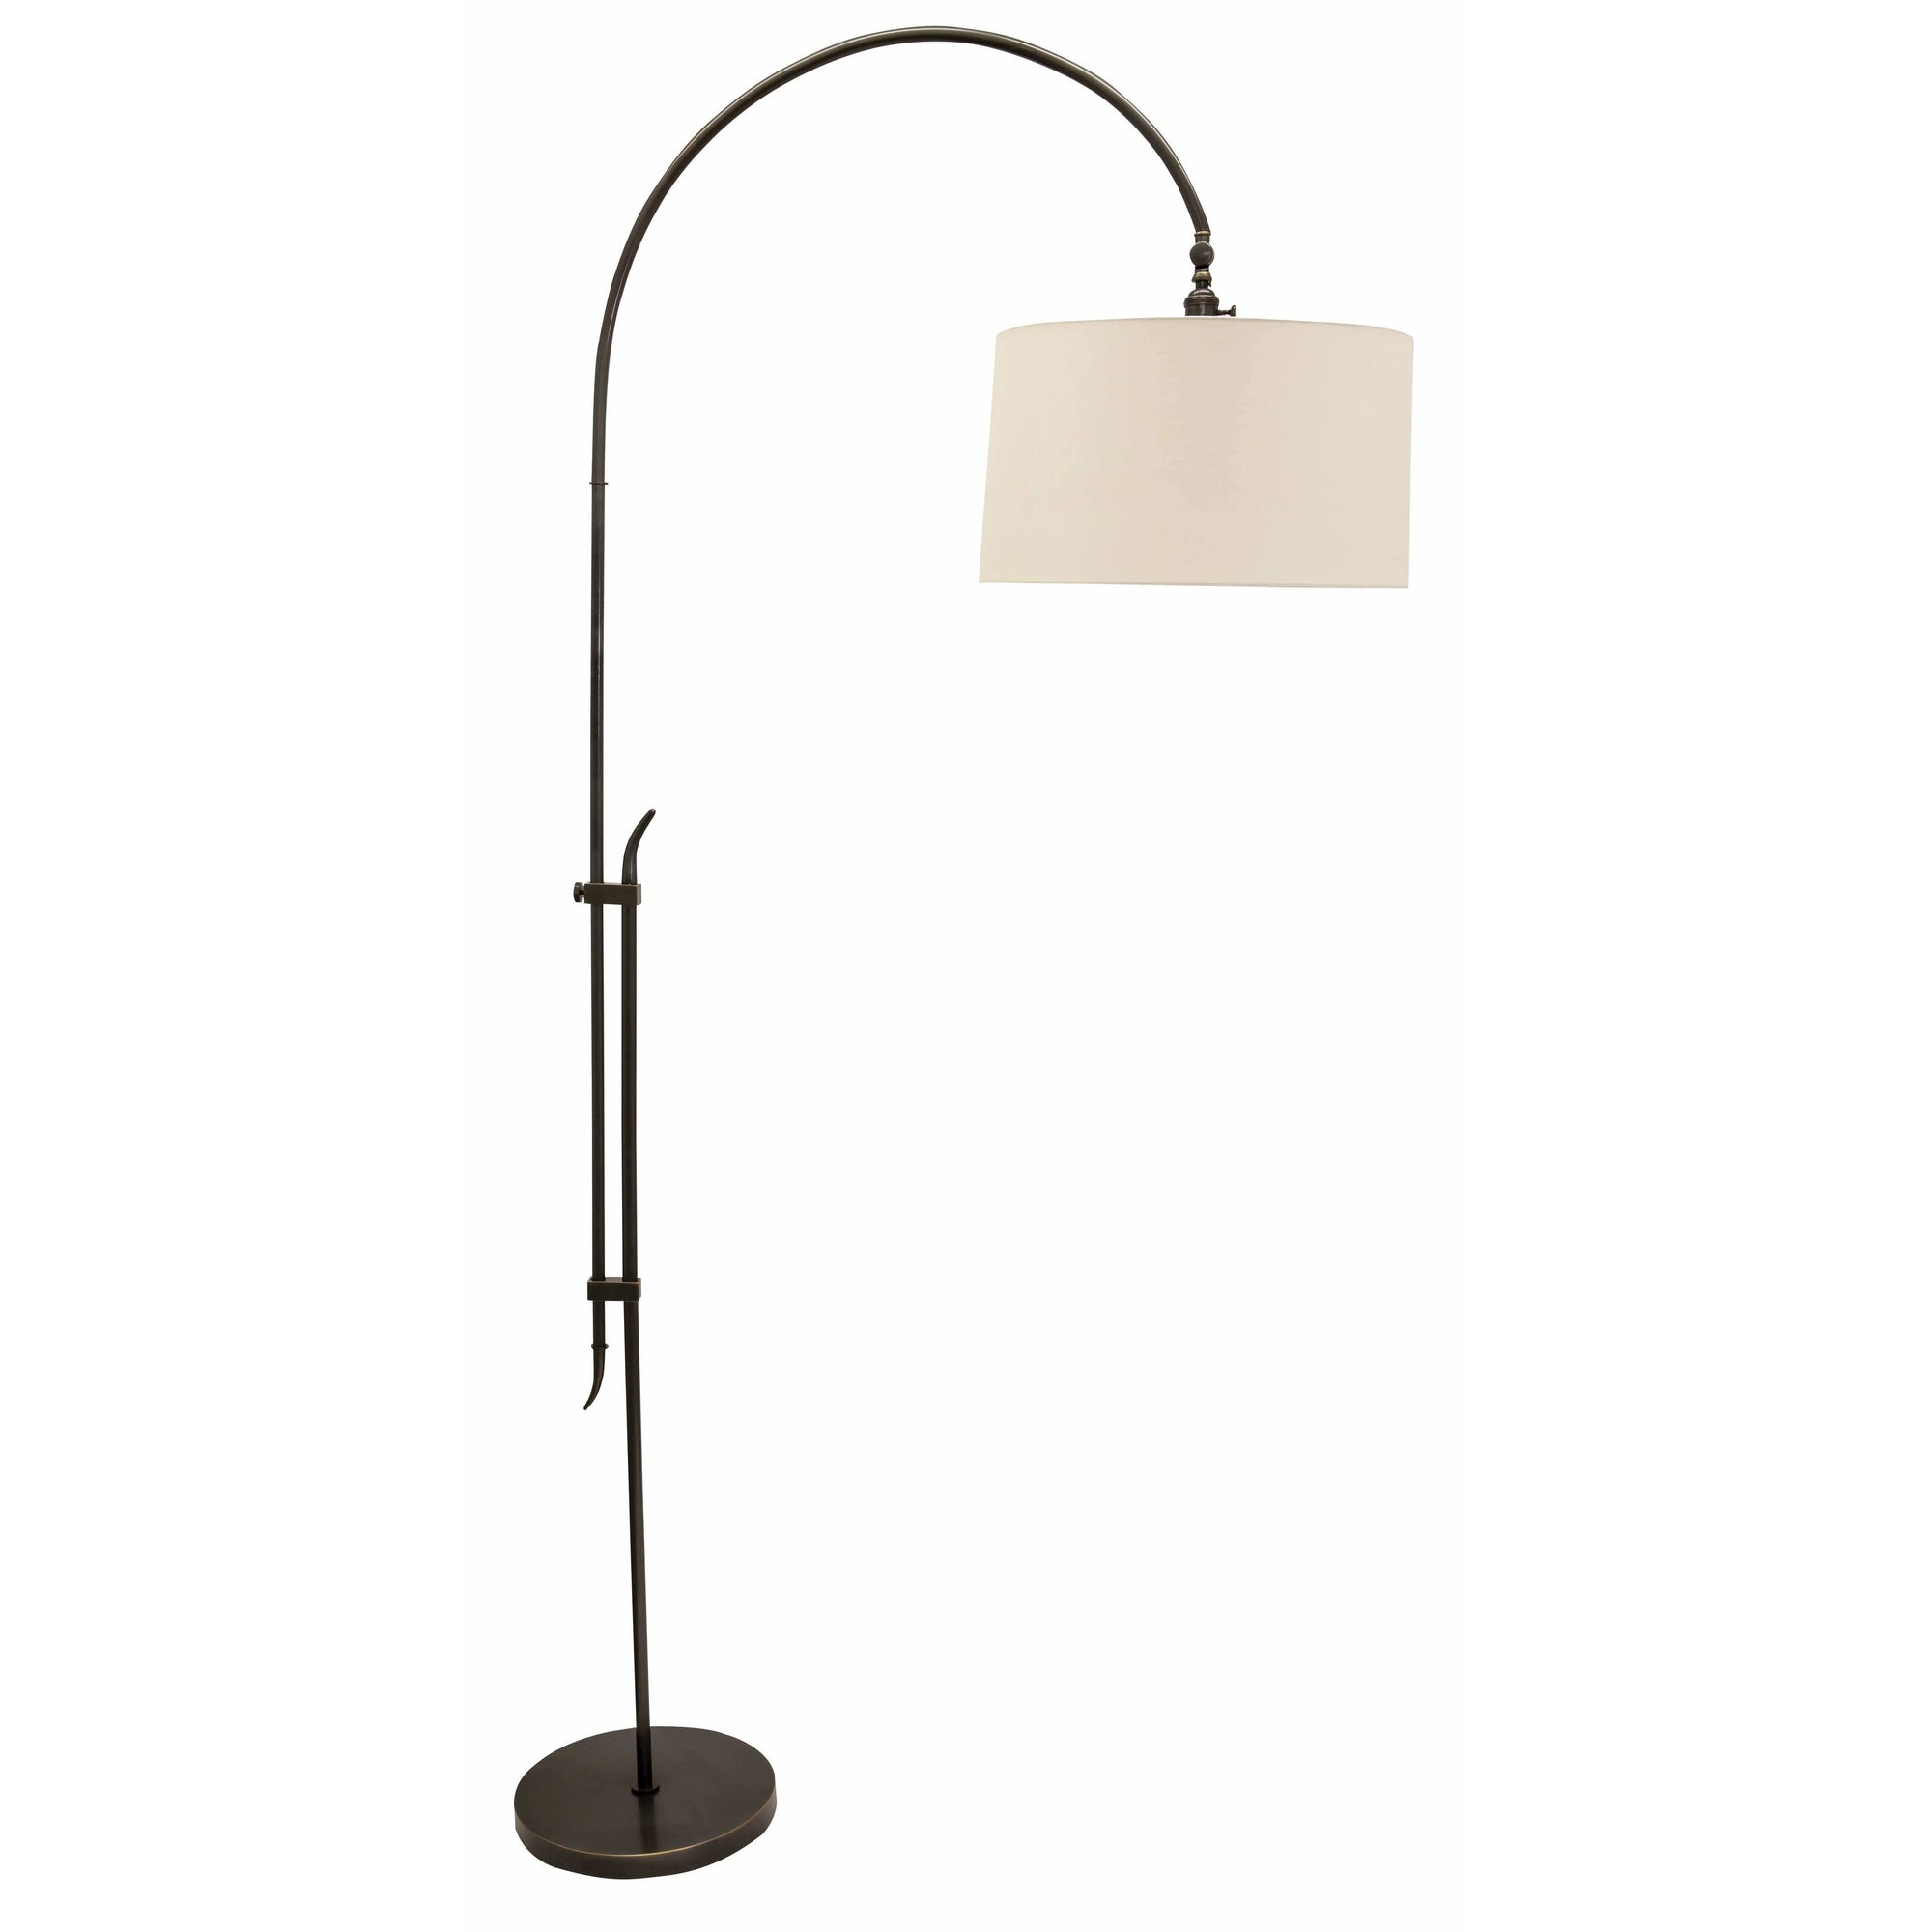 House Of Troy Floor Lamps Windsor Wall Lamp by House Of Troy W401-OB